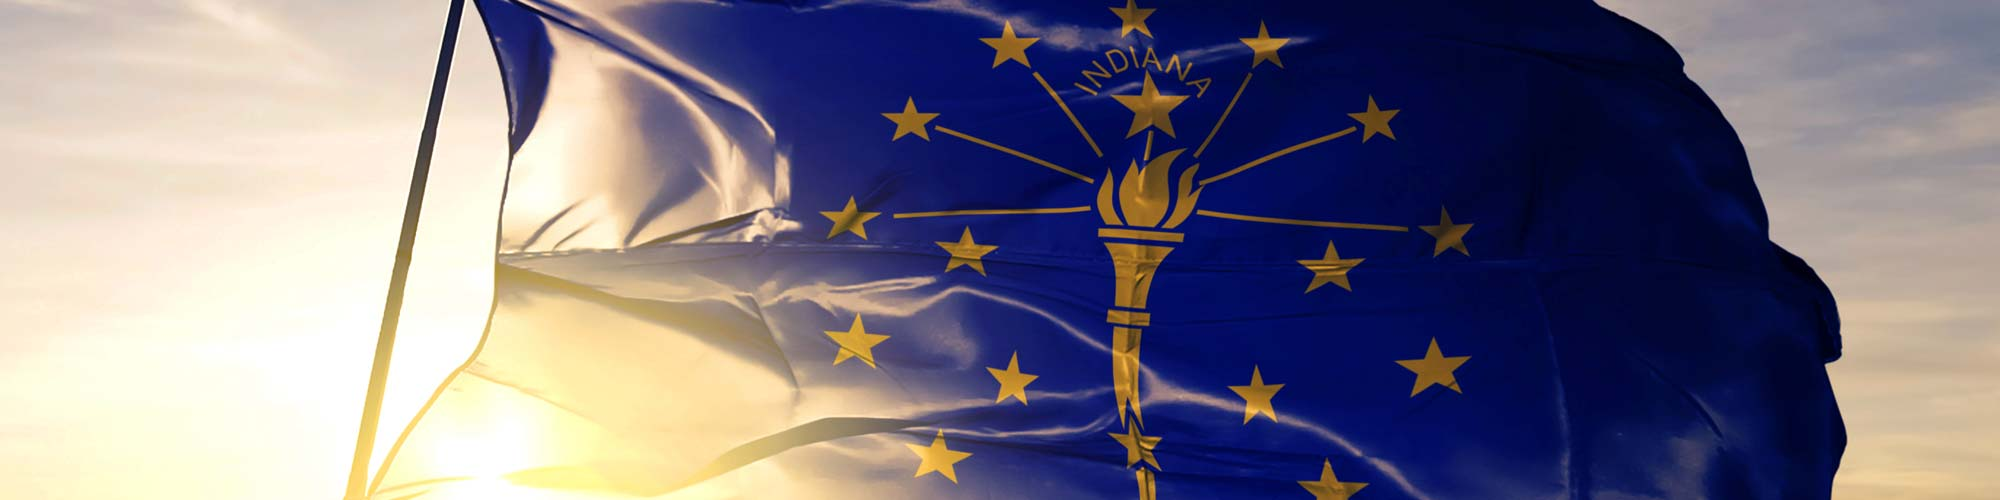 Indiana state flag at sunset